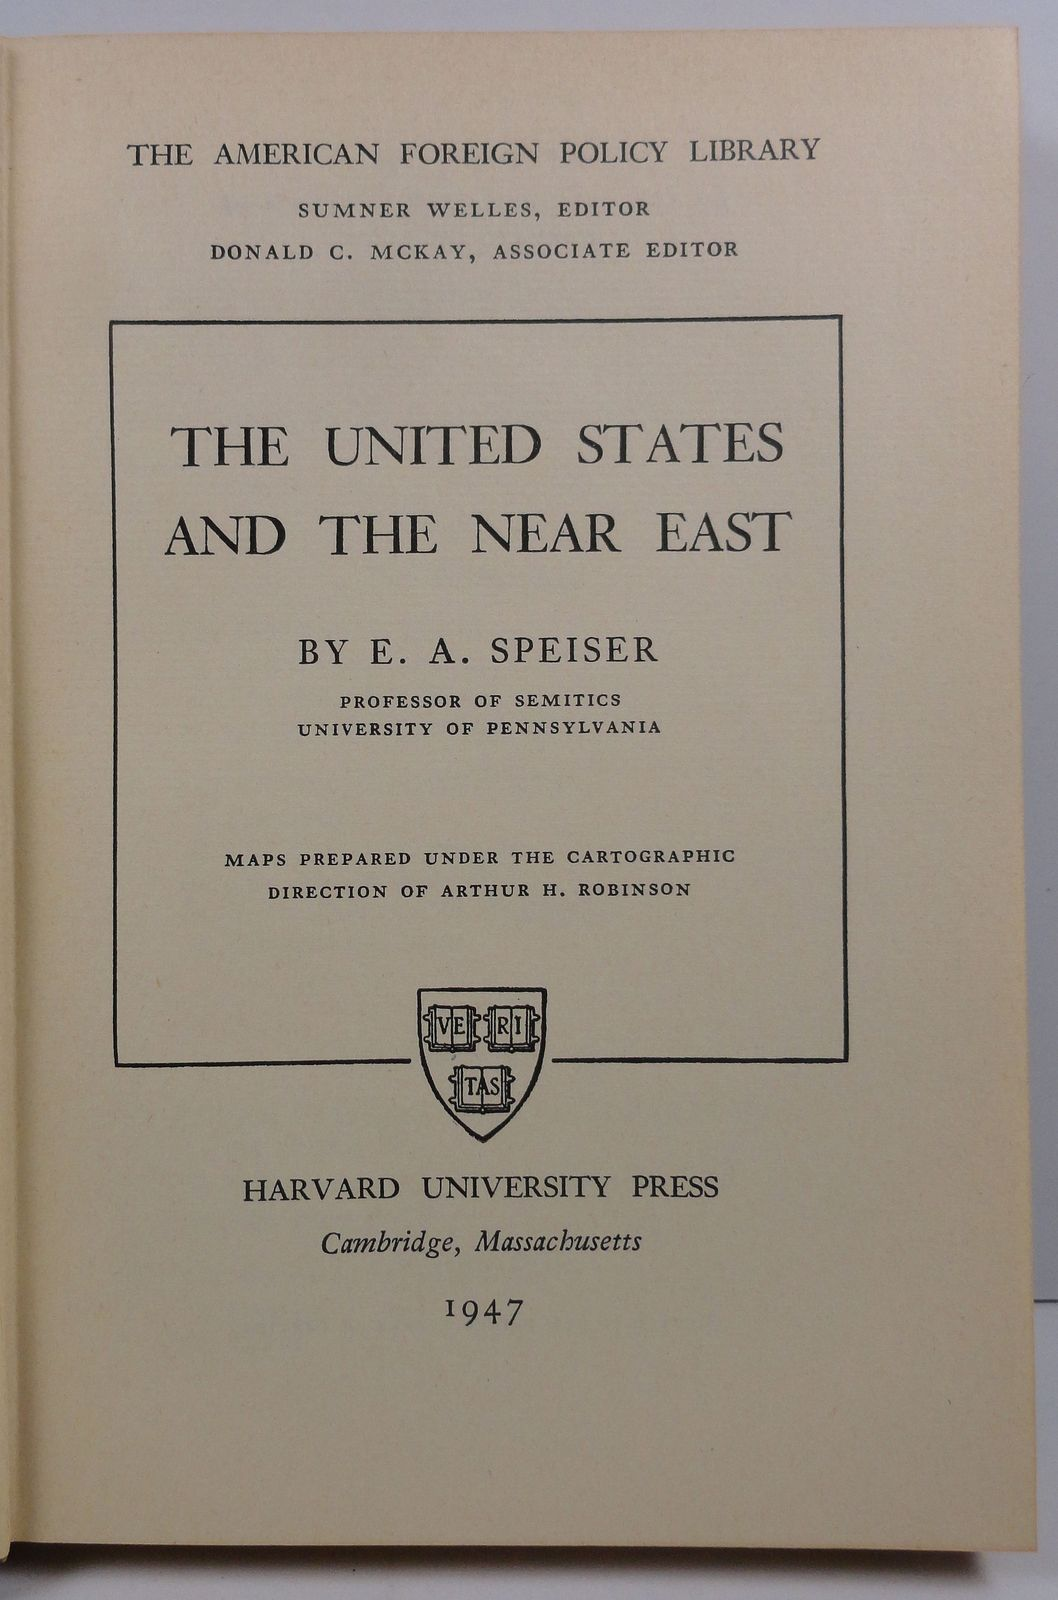 The United States and The Near East by E. A. Speiser 1947